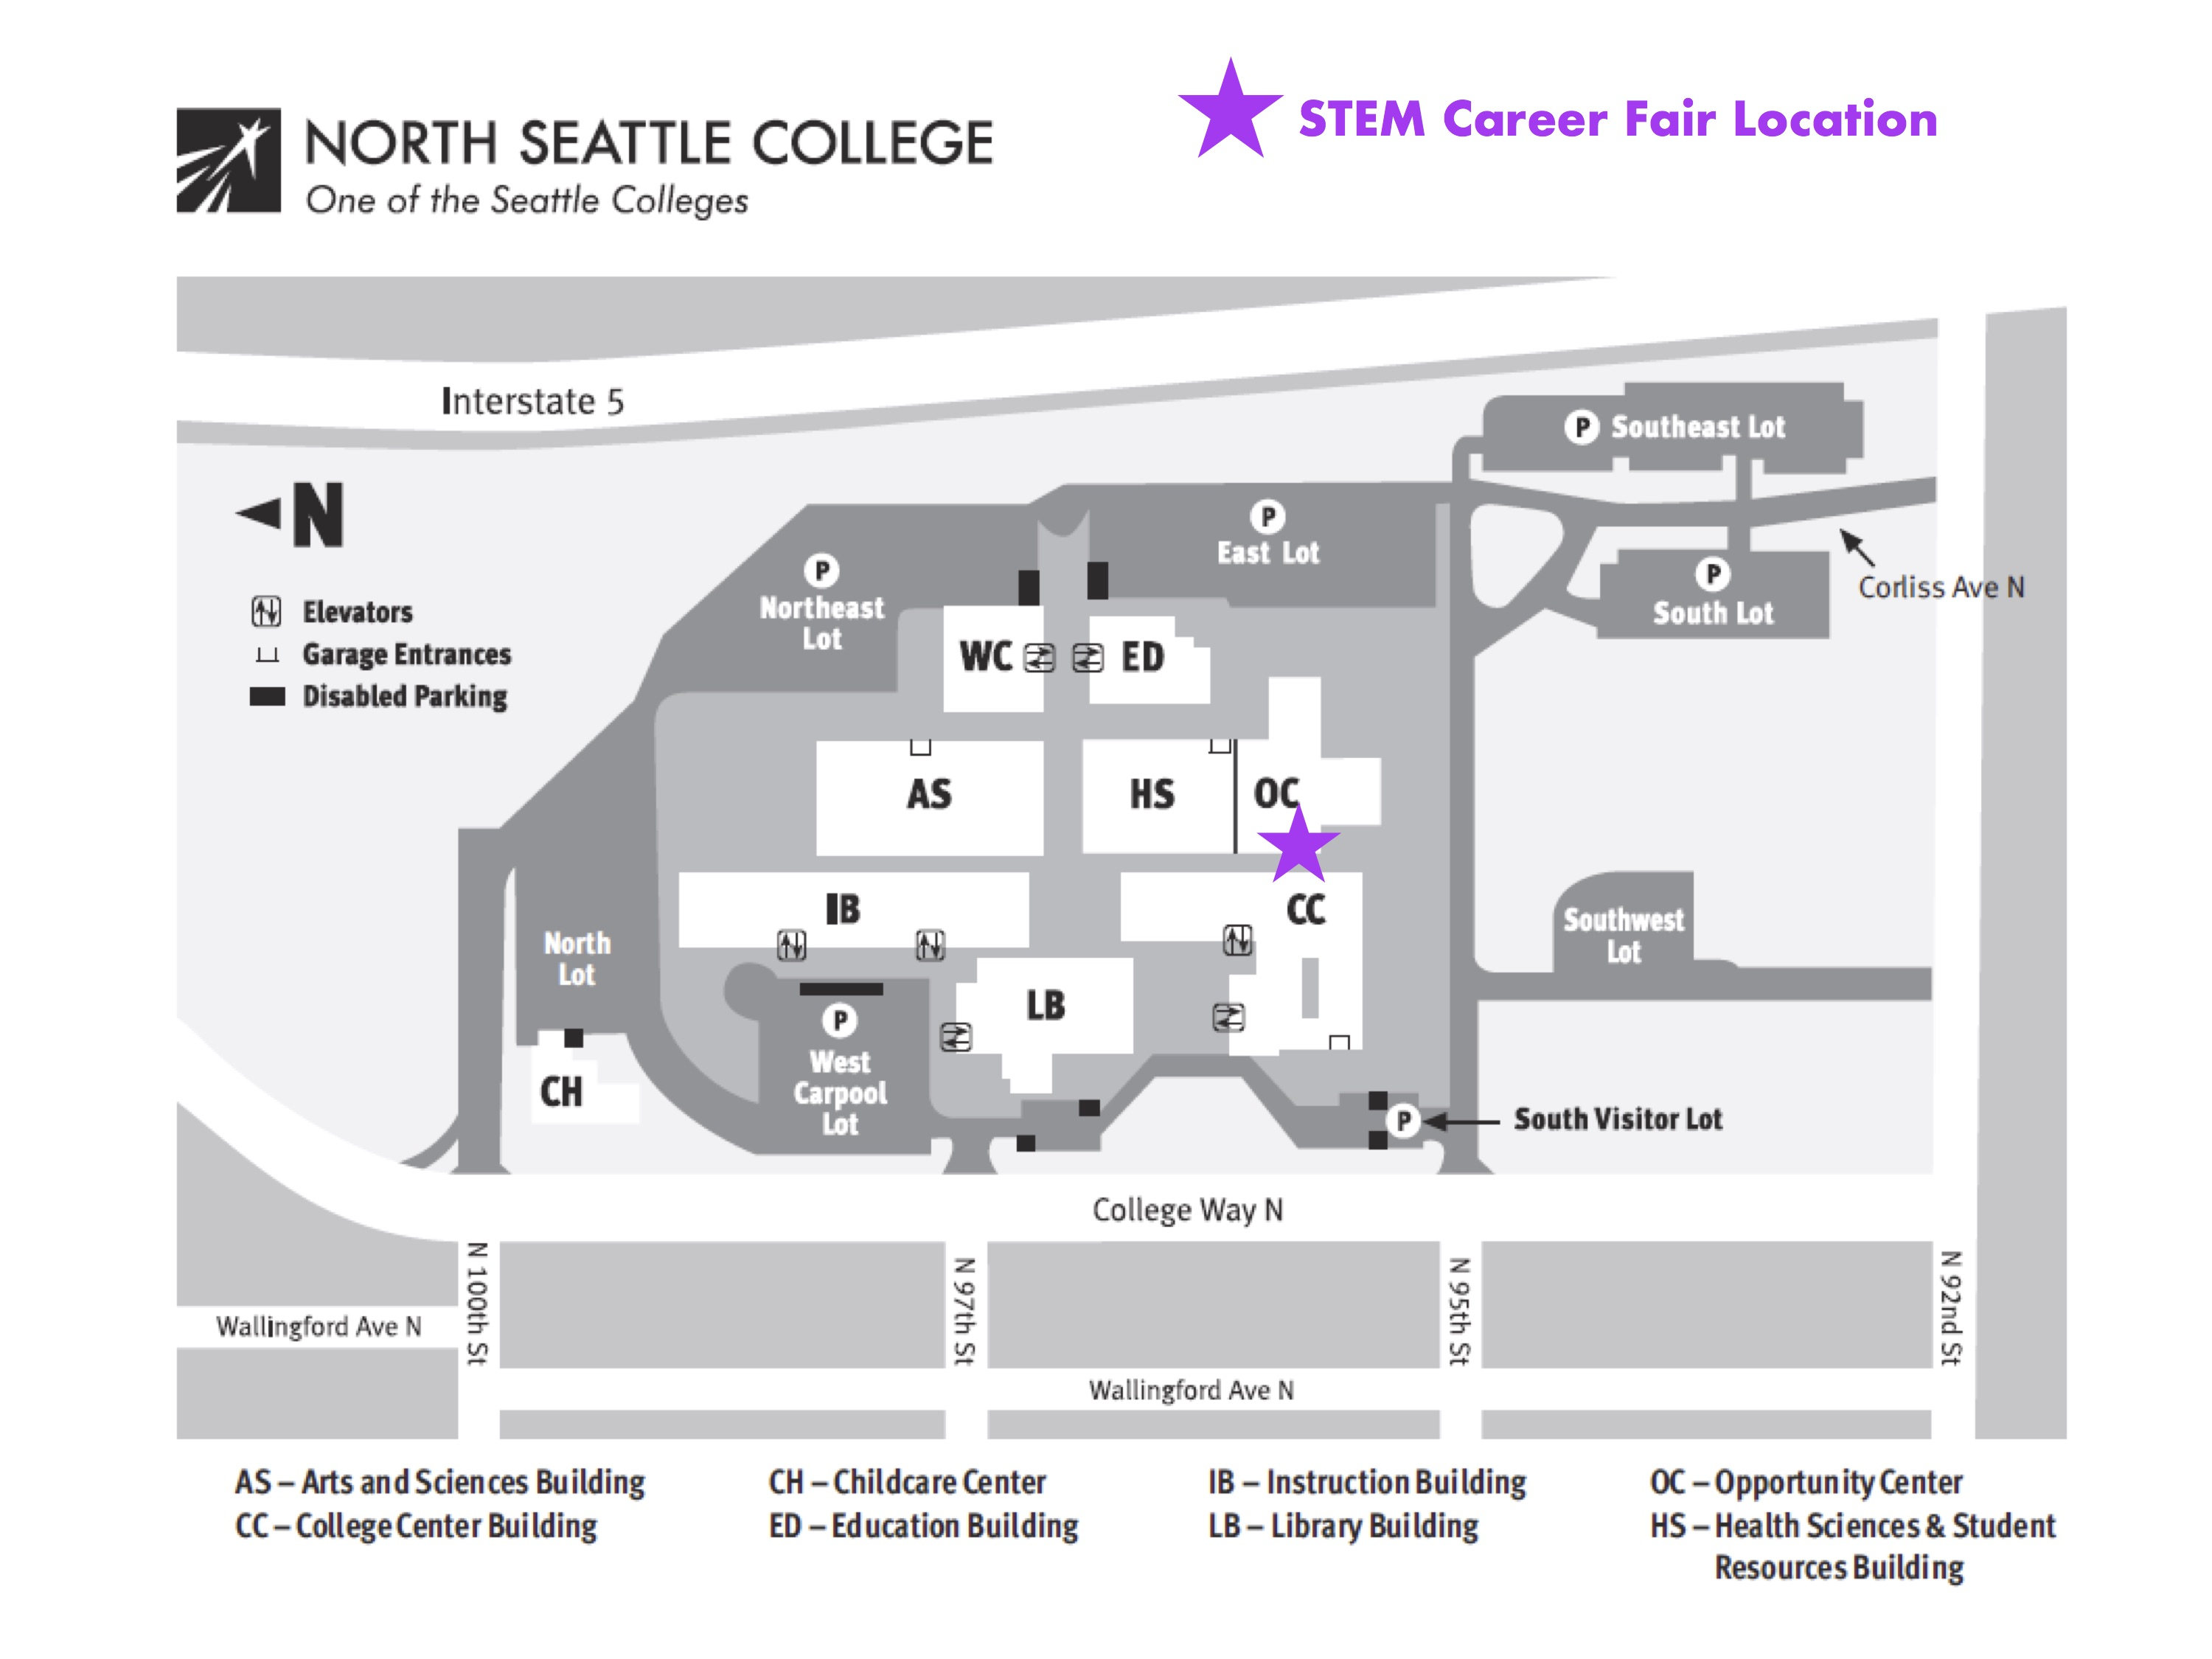 Map for 2017 STEM Career Fair